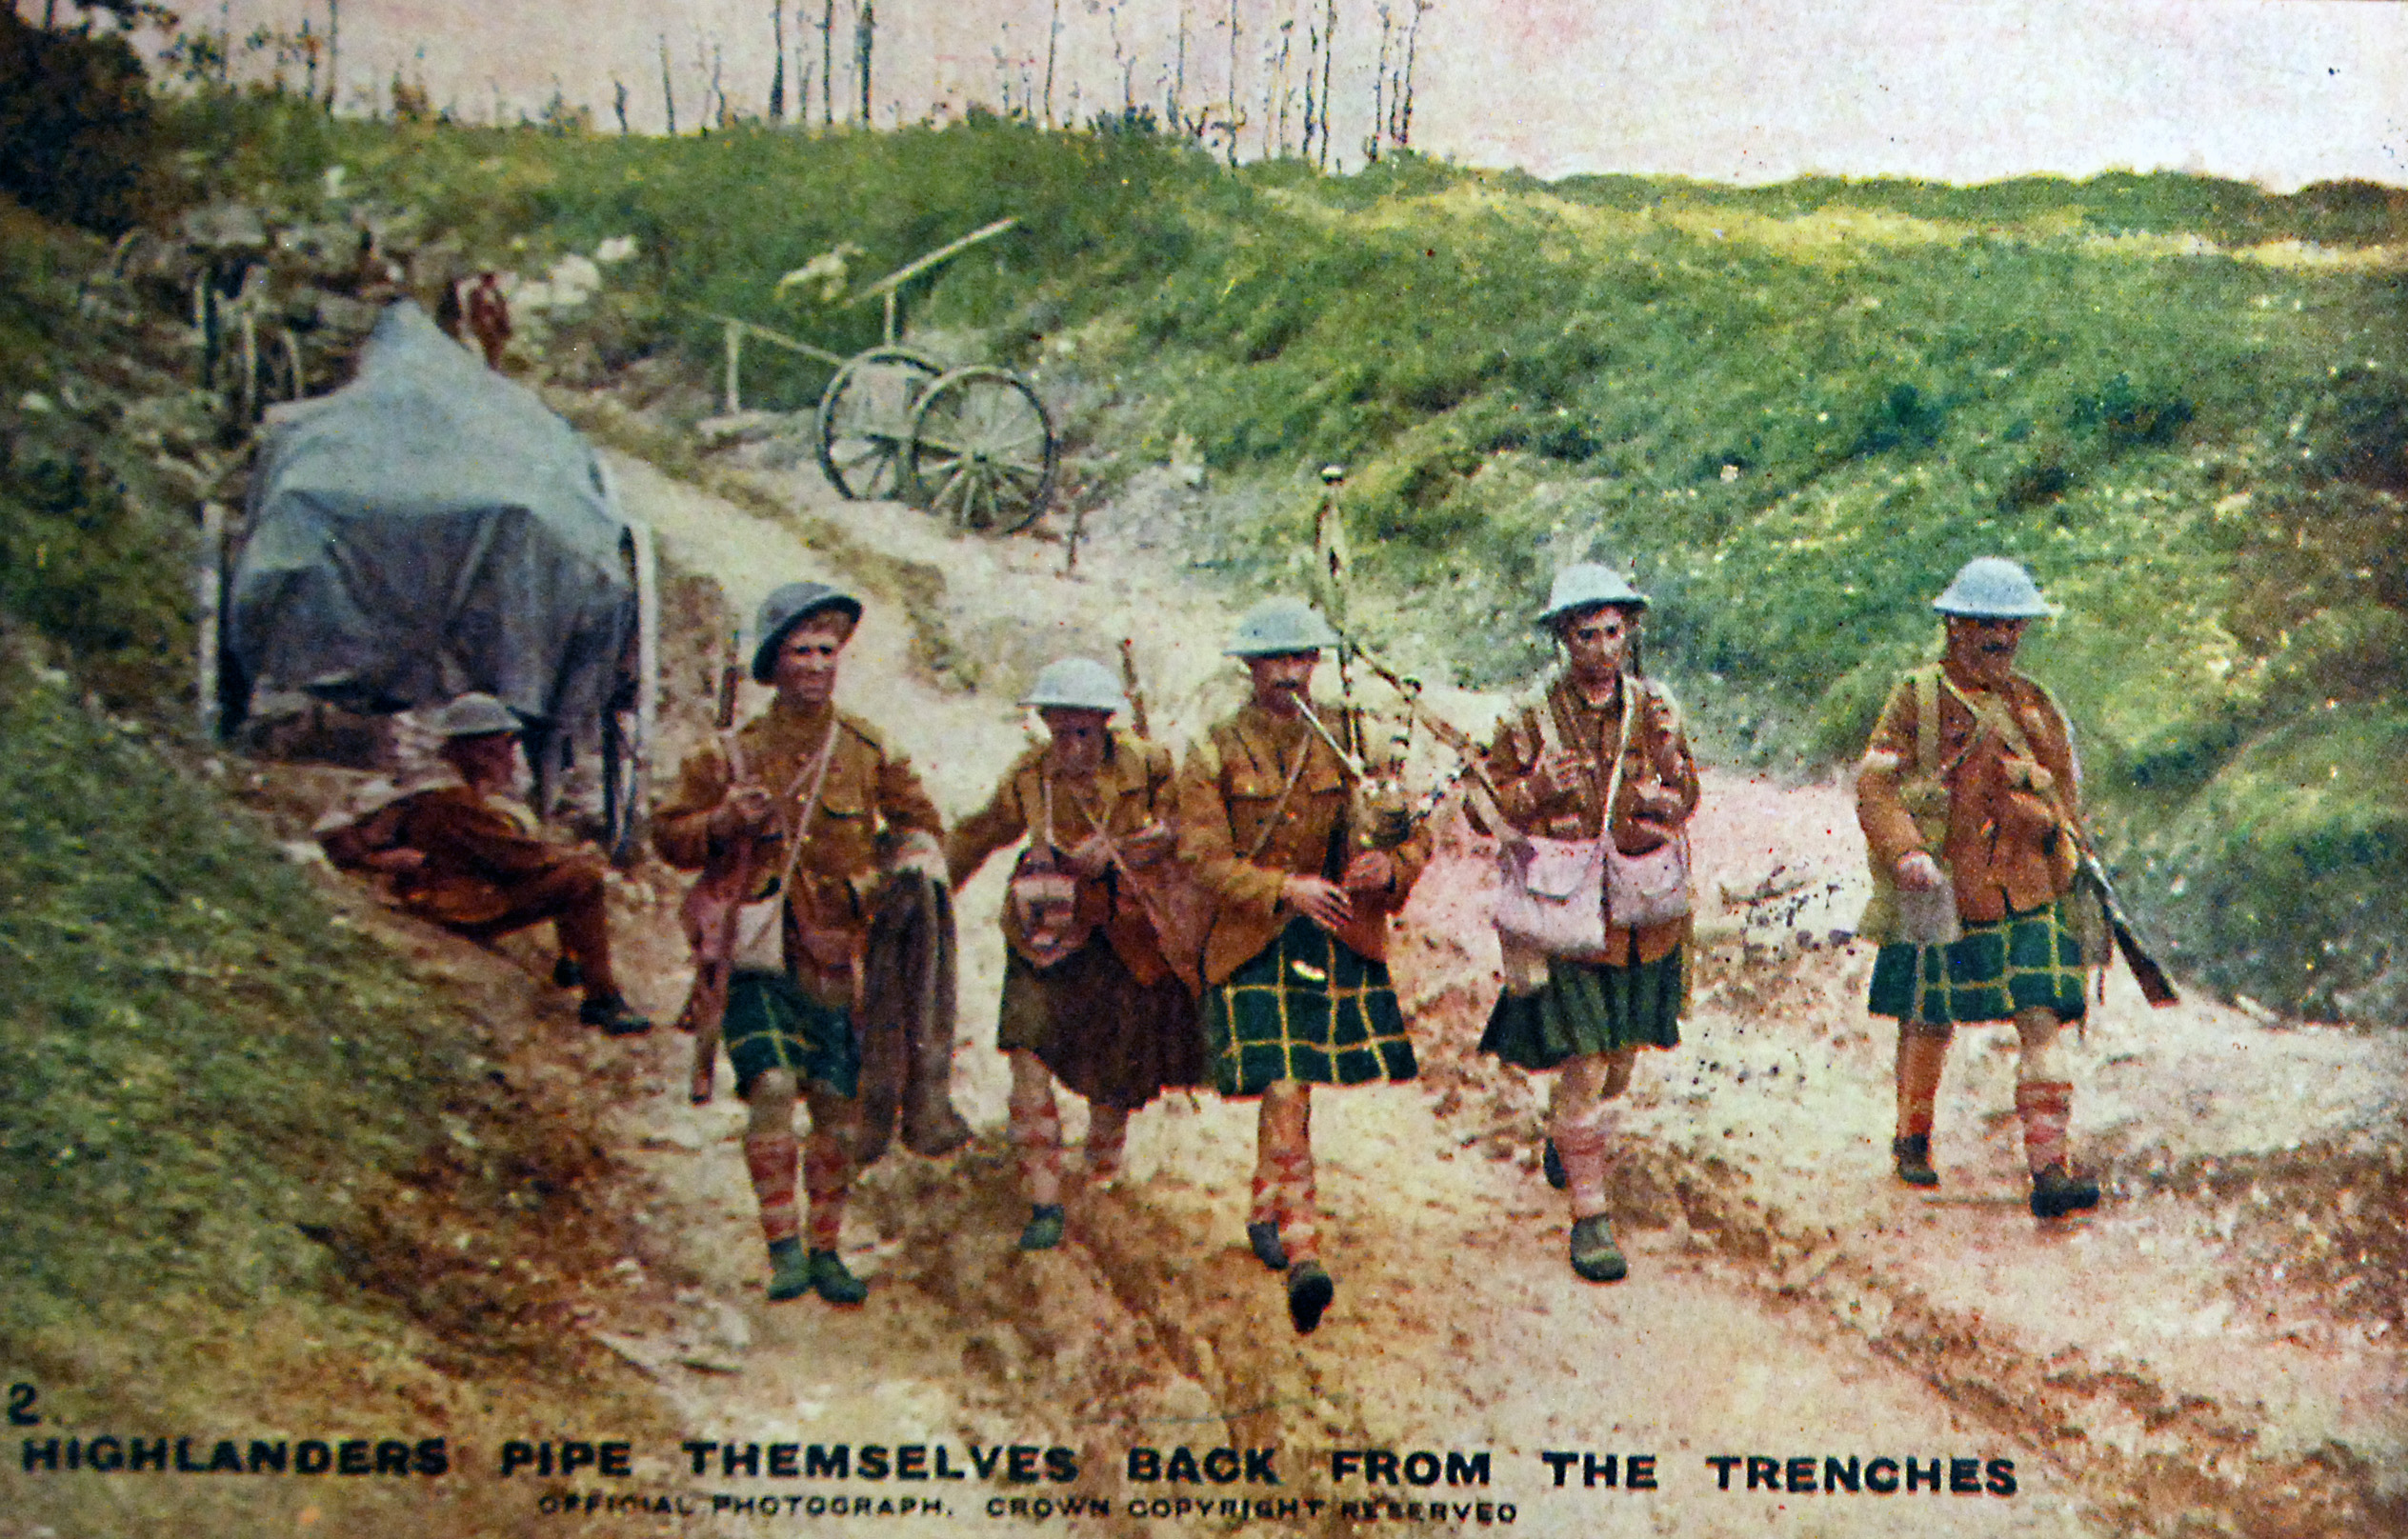 What Did Highlanders Pipe Themselves Back Look Like  in 1916